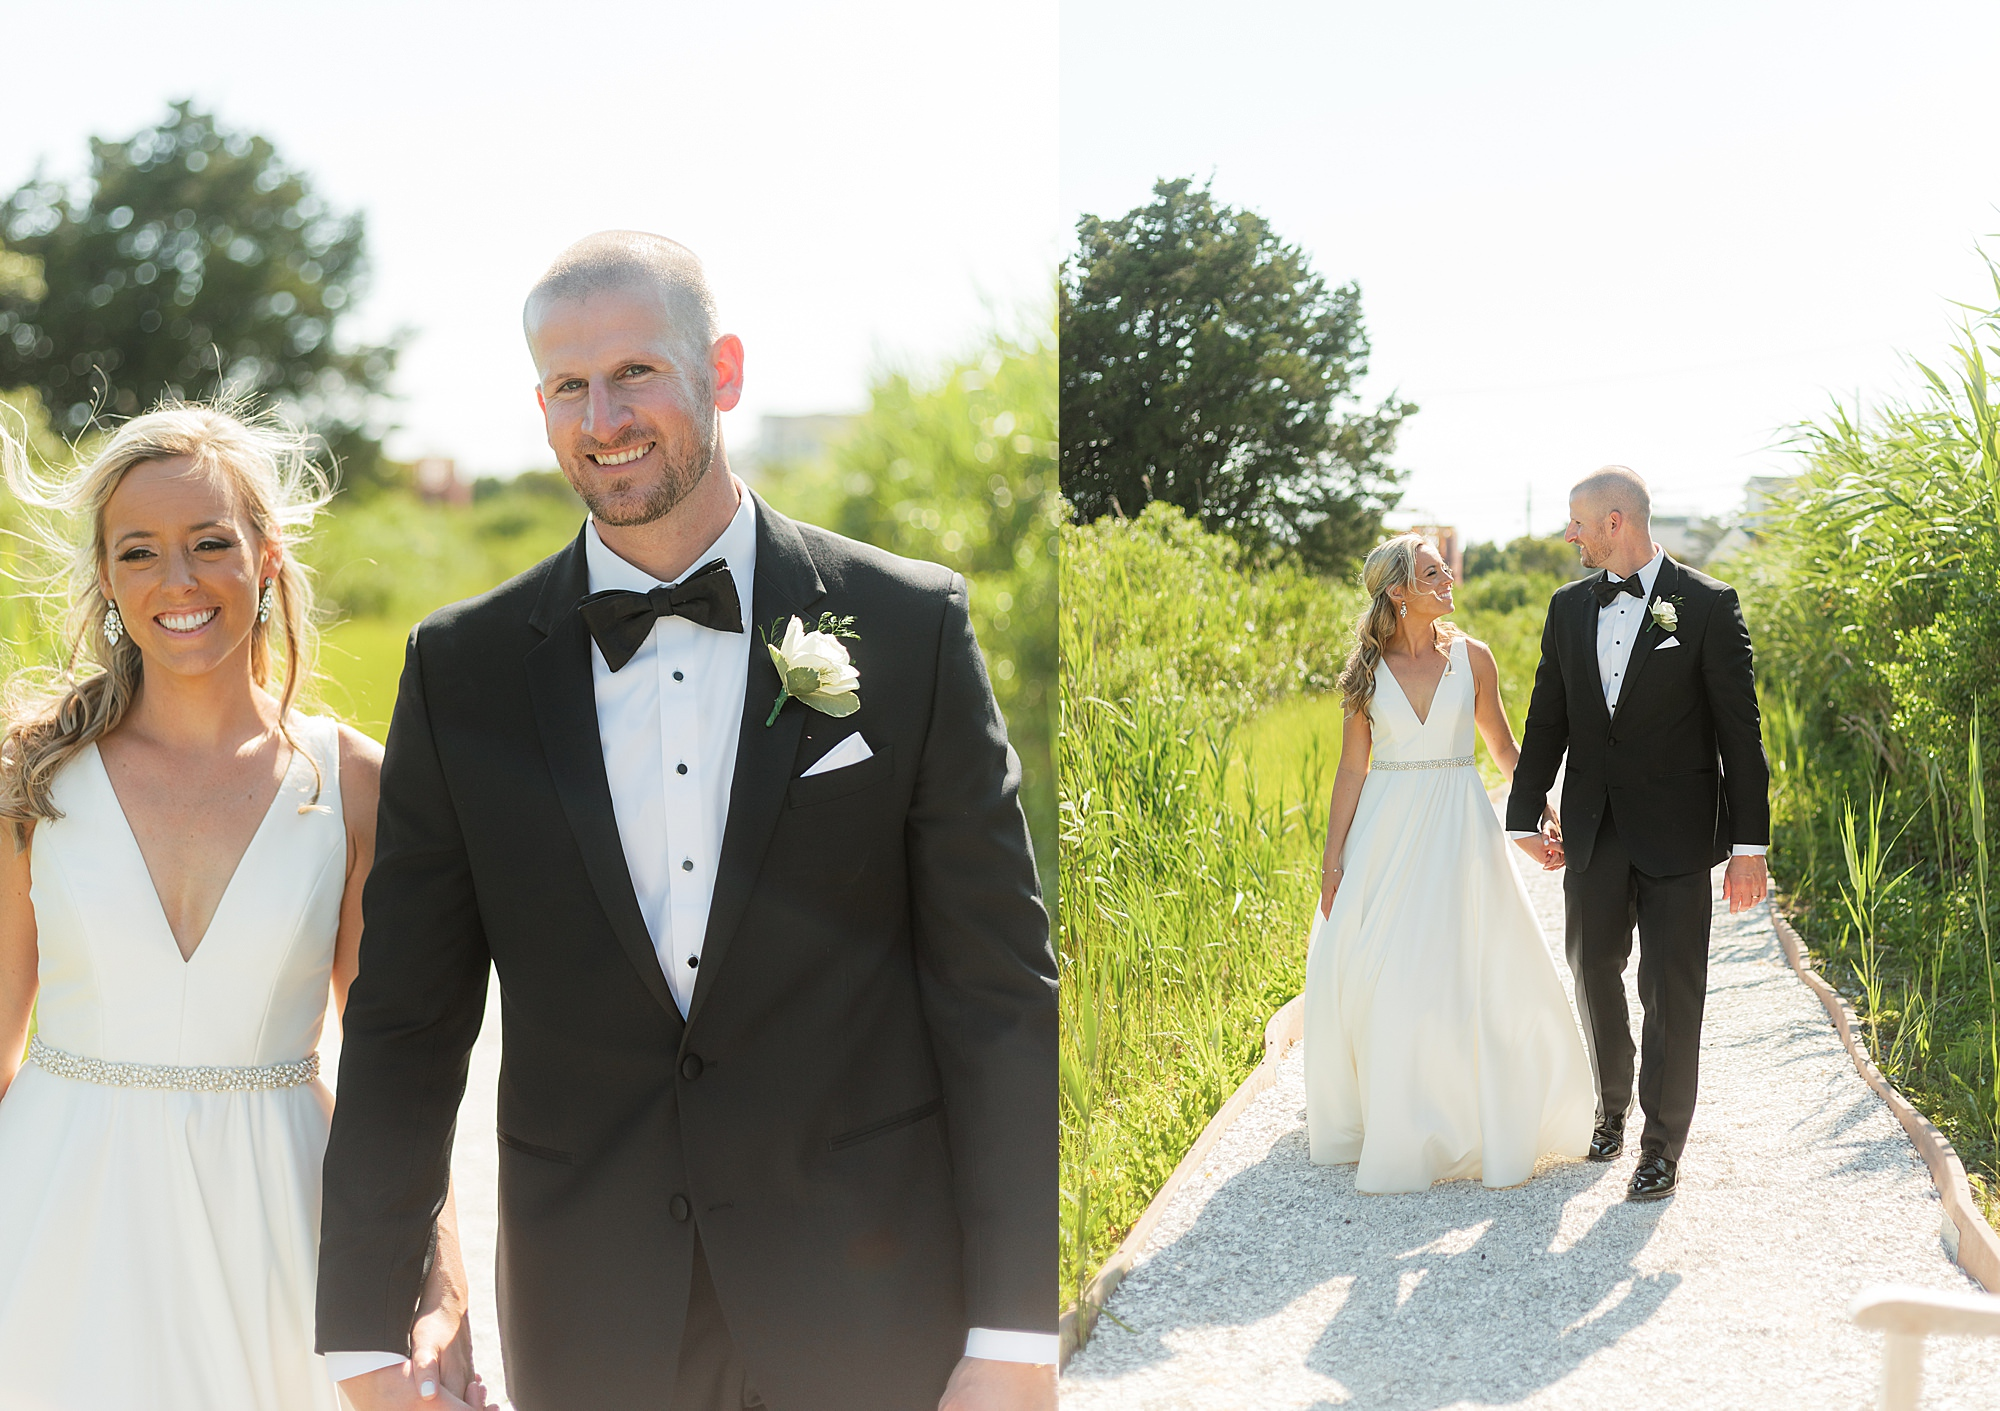 Natural and Vibrant Wedding Photography at the Reeds in Stone Harbor NJ by Magdalena Studios 0039